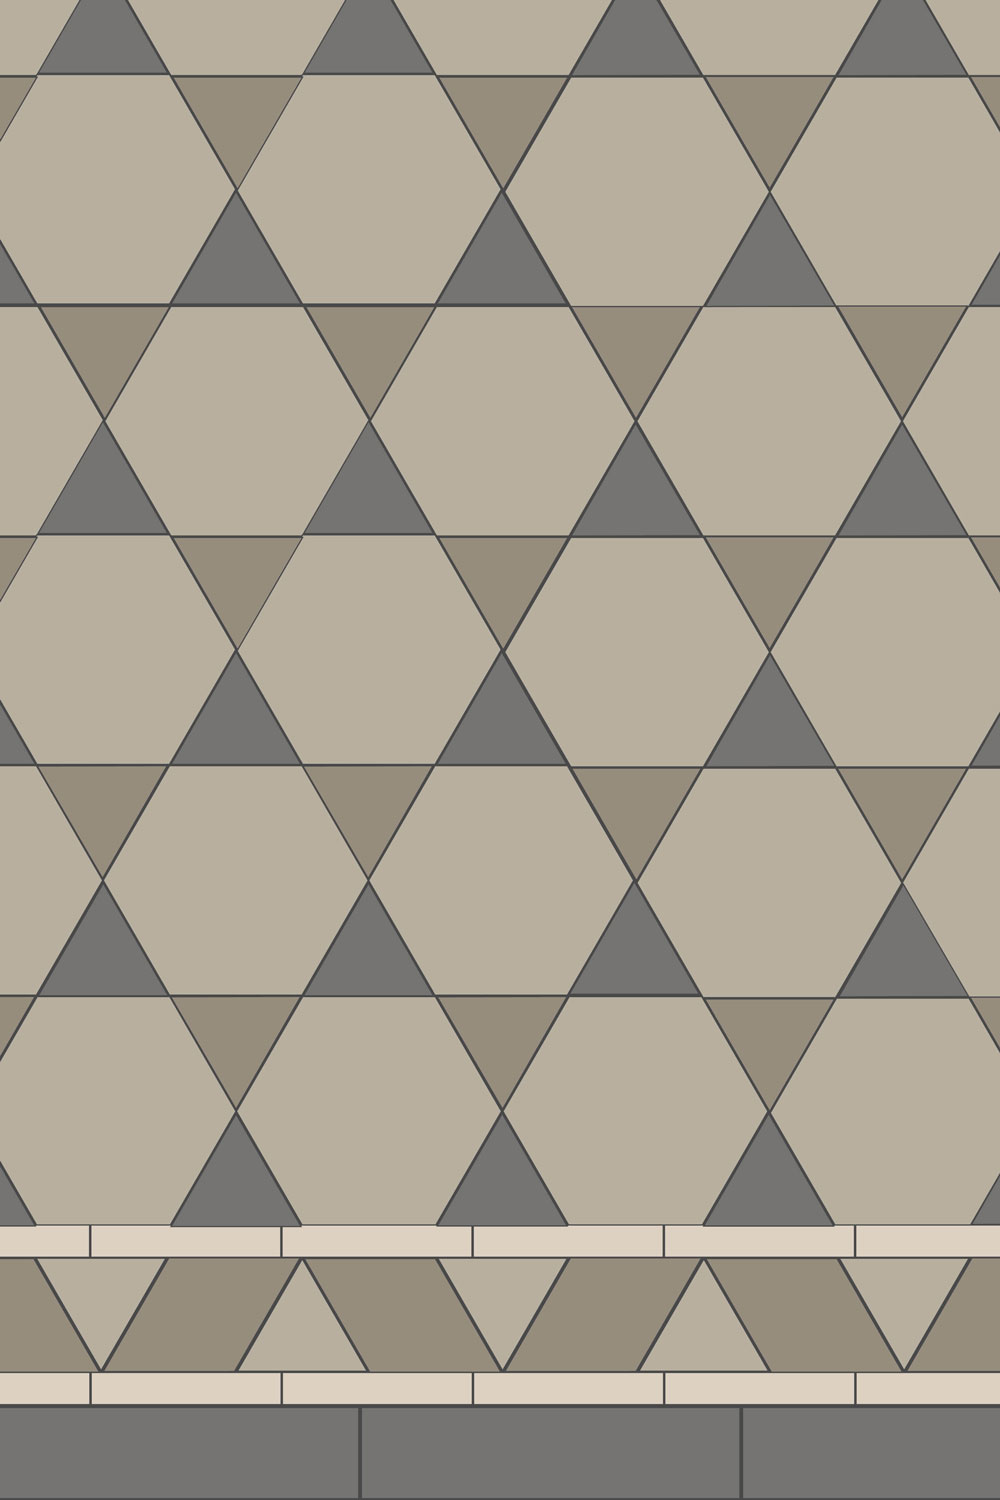 Equilateral Triangle Tile